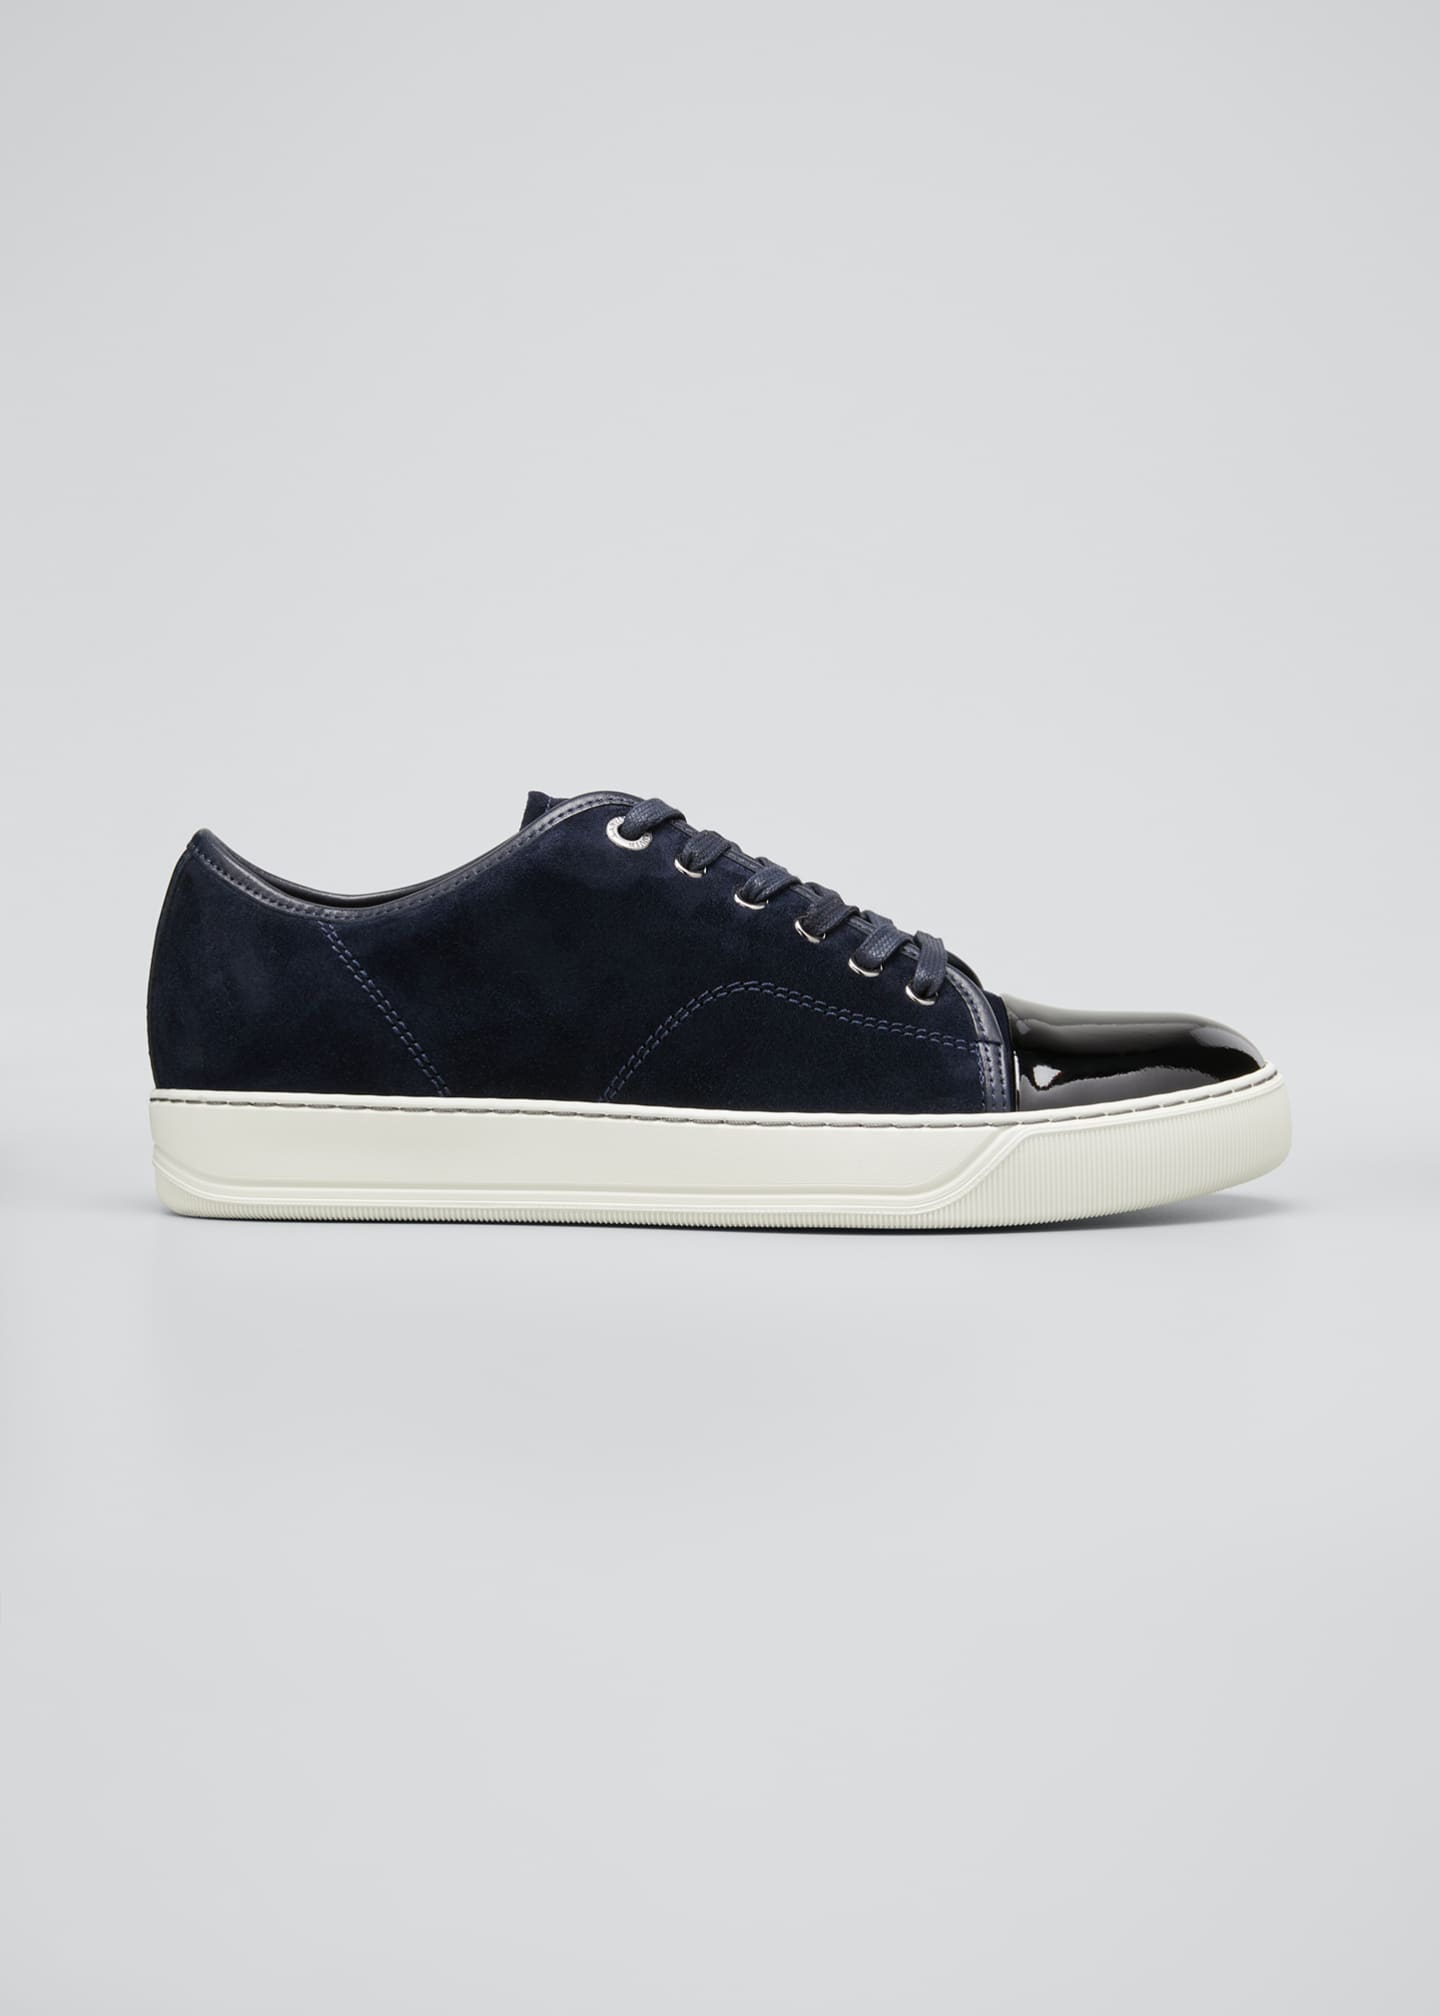 Image 1 of 3: Men's Patent Leather/Suede Low-Top Sneakers